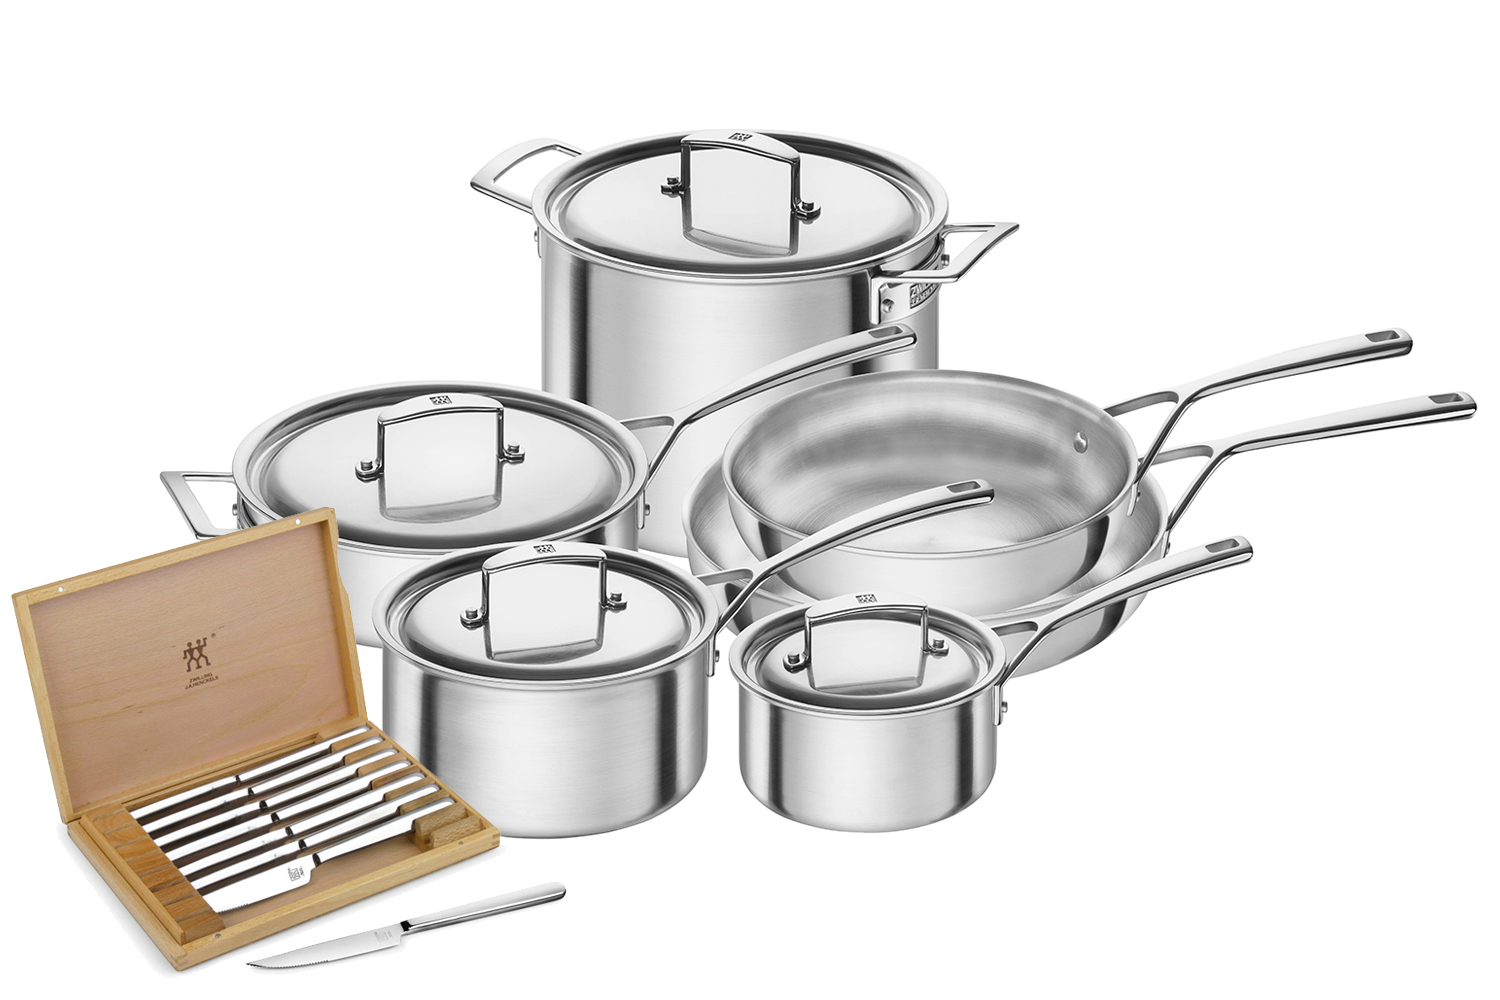 Zwilling Aurora 5-Ply Stainless Steel 10 Piece Cookware Set plus Free 8 pc. Knife Set